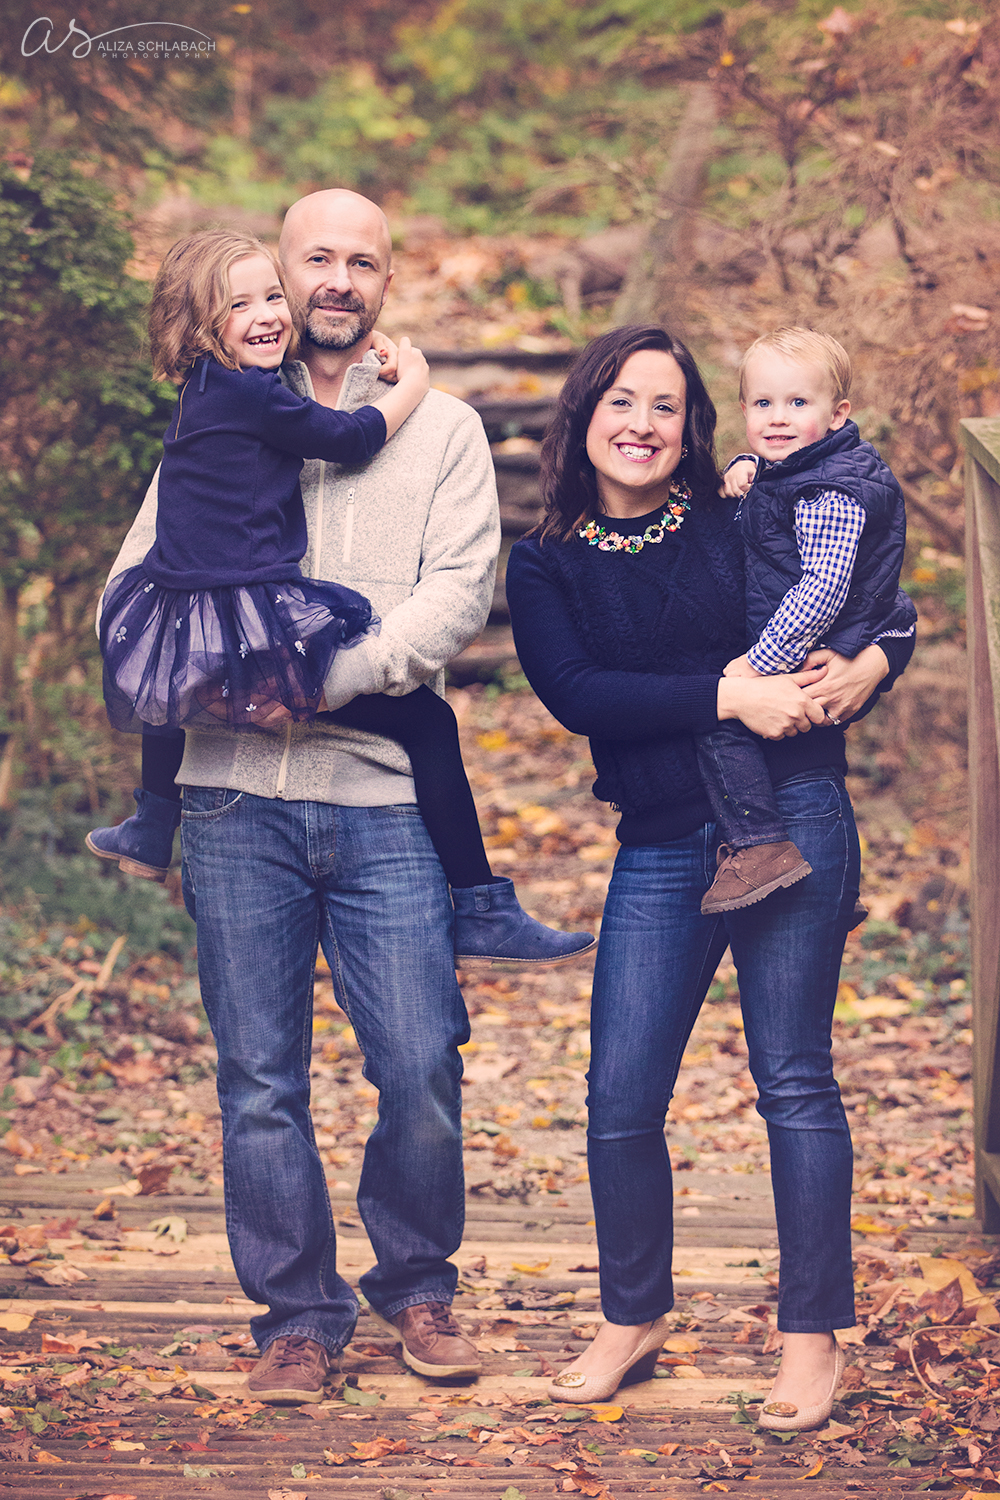 Fall photograph of a mom and dad and 2 kids with blues and creams color scheme